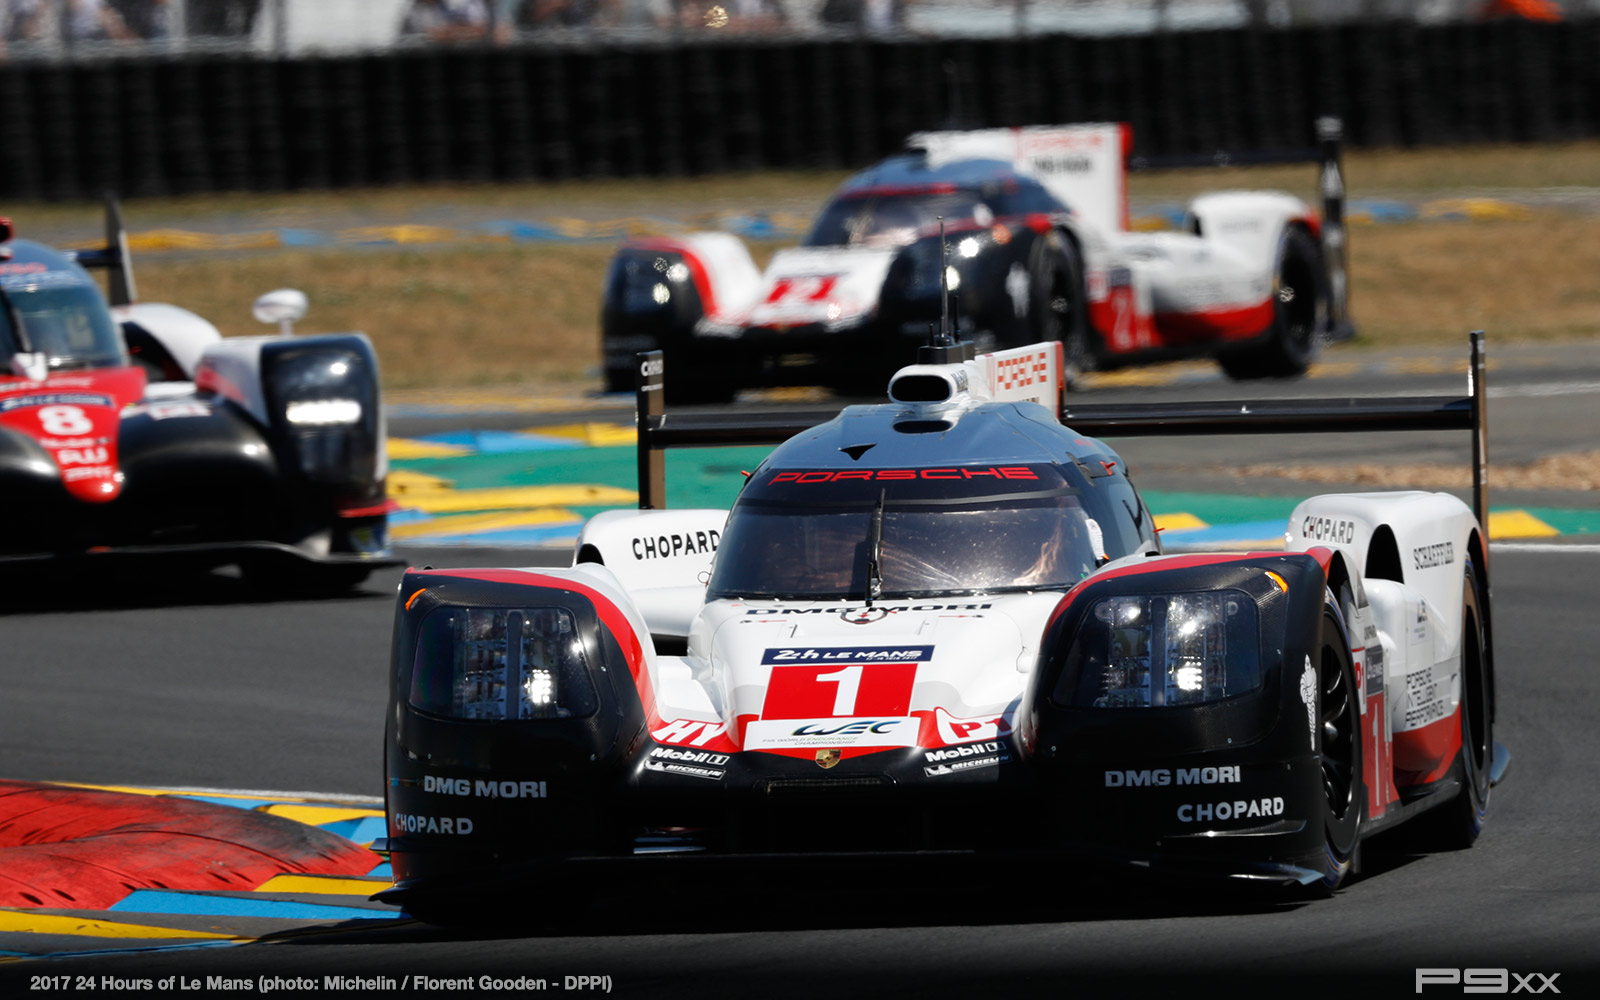 2017-24-hours-of-lemans-017_05_24-Heures_du_Mans_02517002__GOO0276315